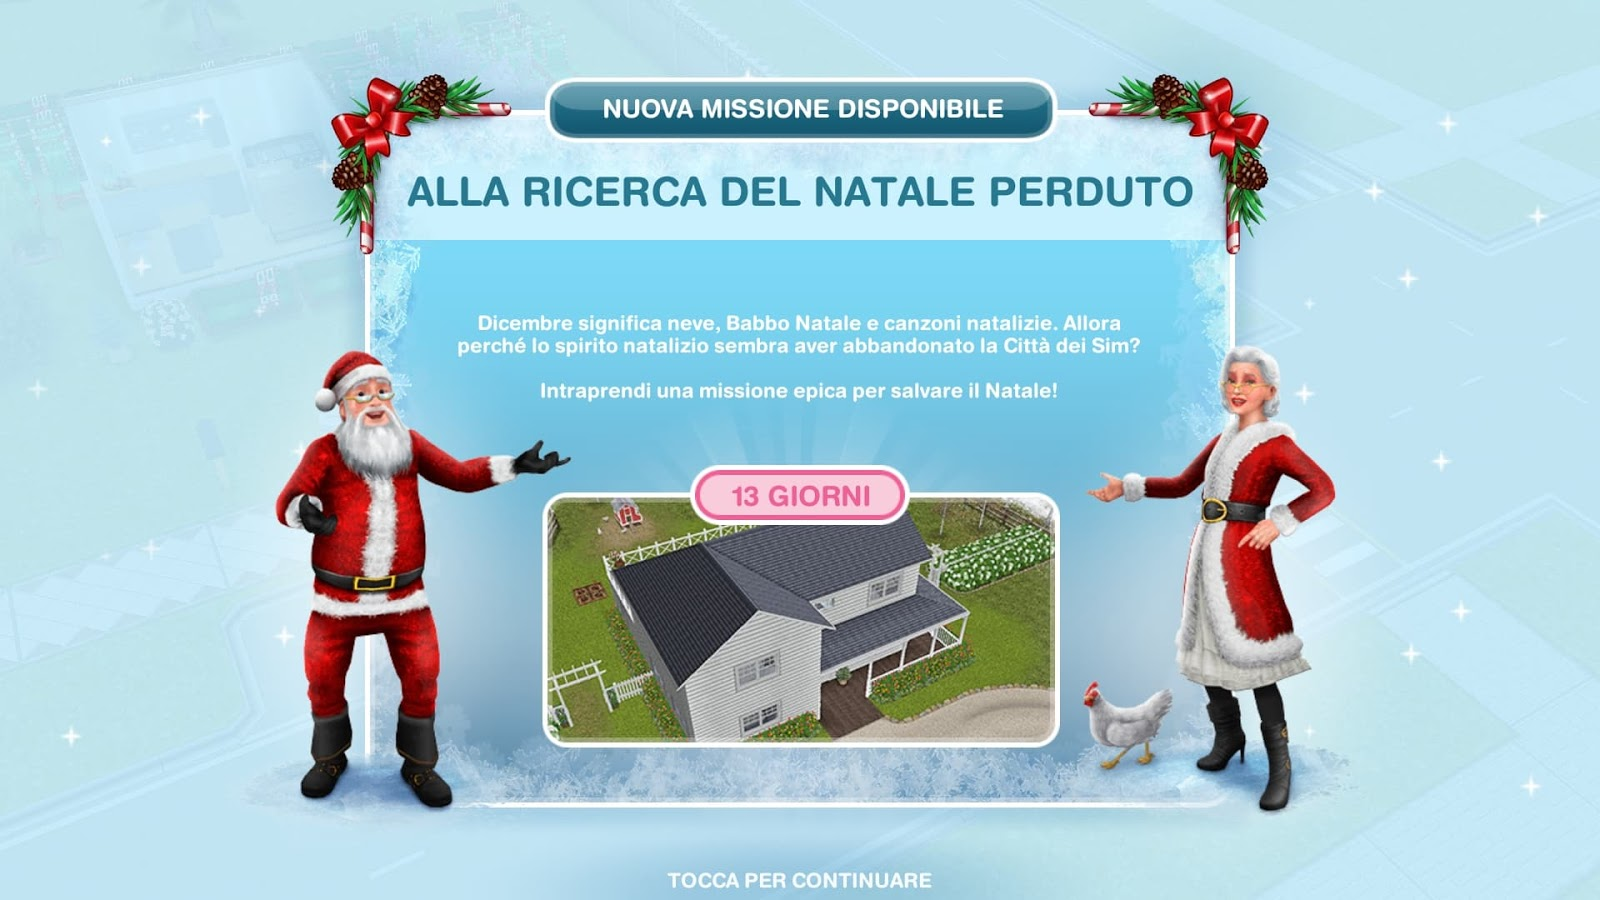 Addobbi Natalizi The Sims 3.The Sims Freeplay It Alla Ricerca Del Natale Perduto